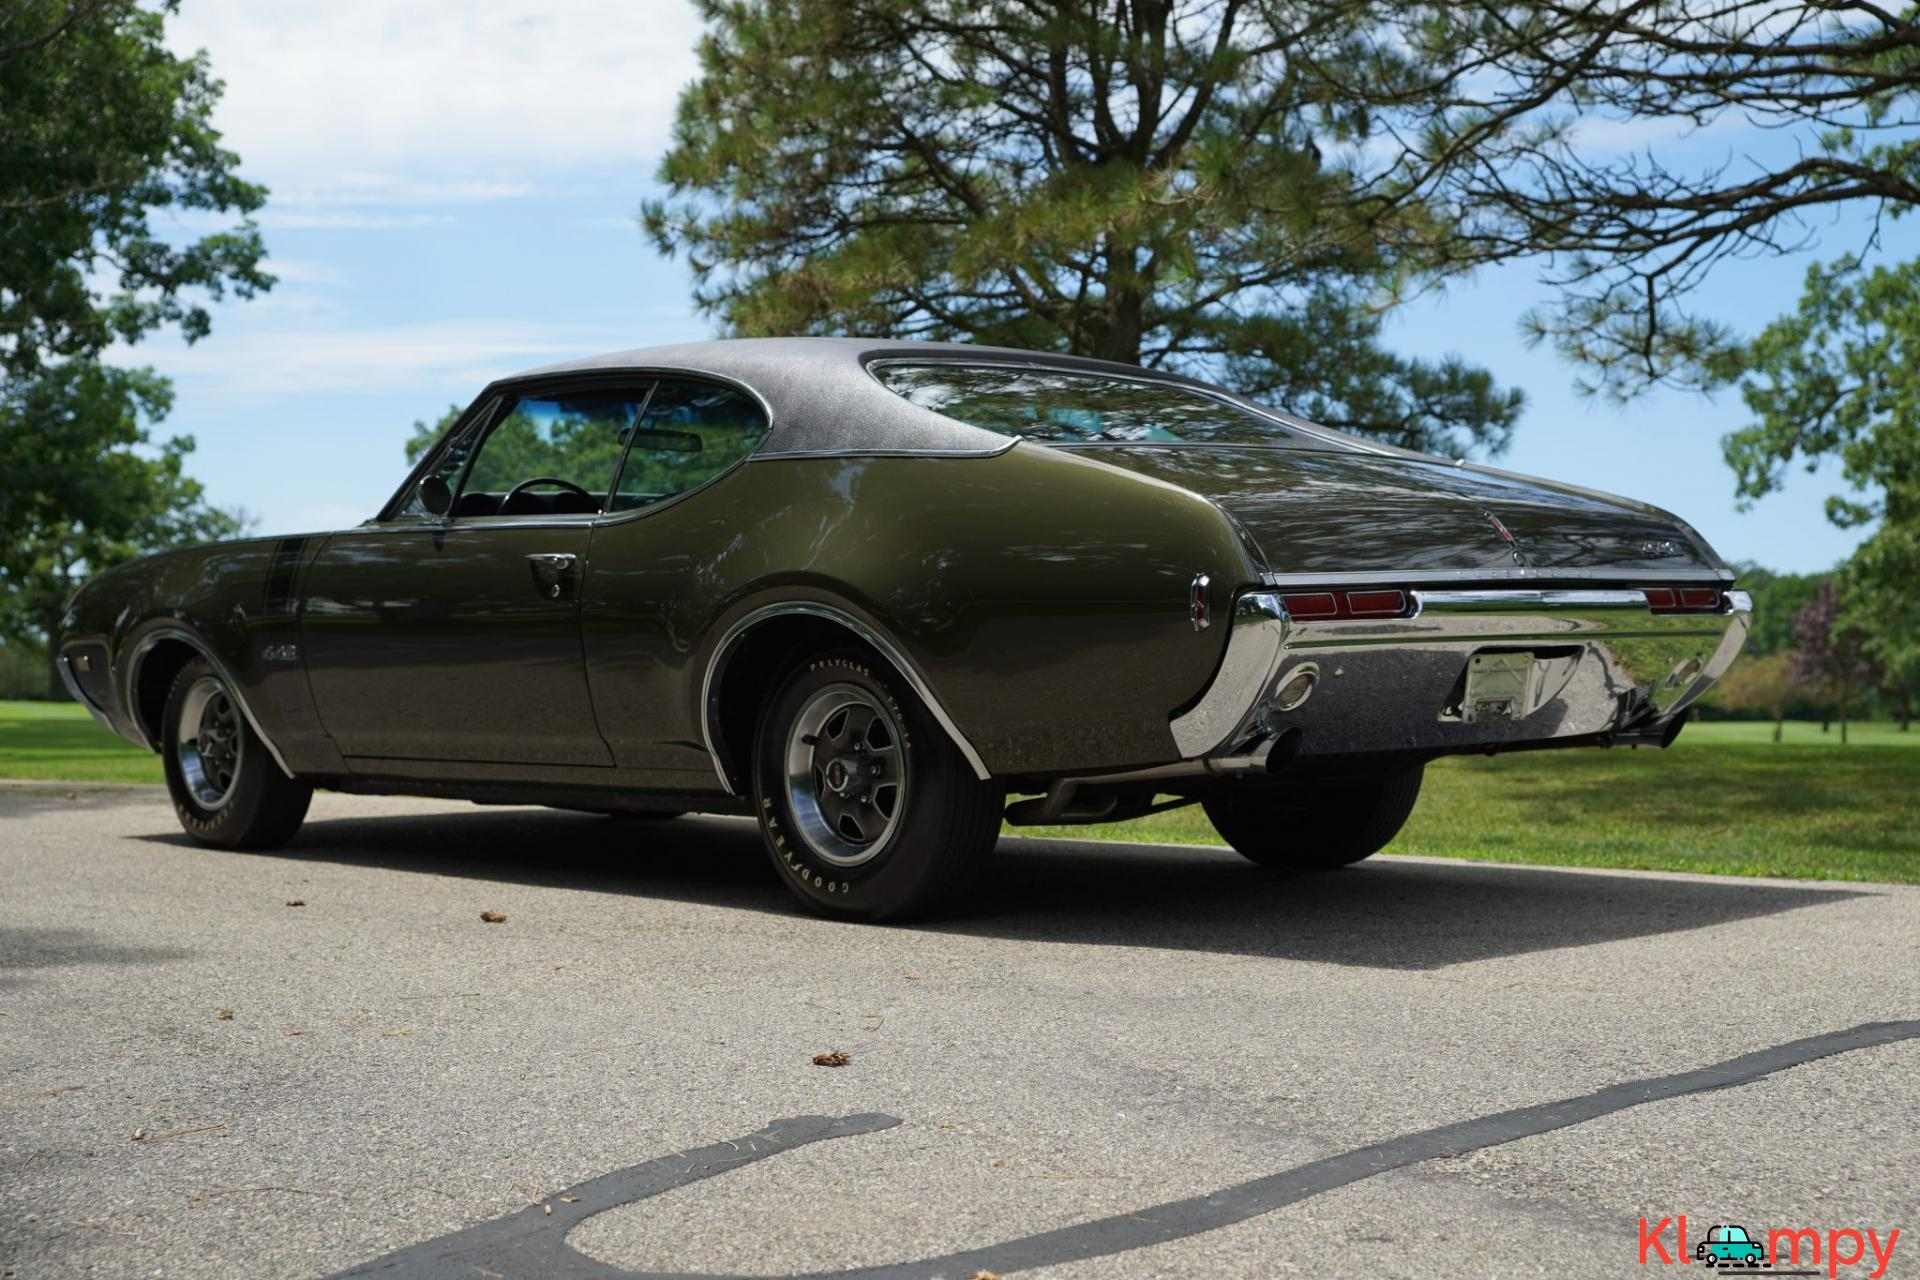 1968 Oldsmobile 442 Holiday Coupe Jade Gold - 7/28